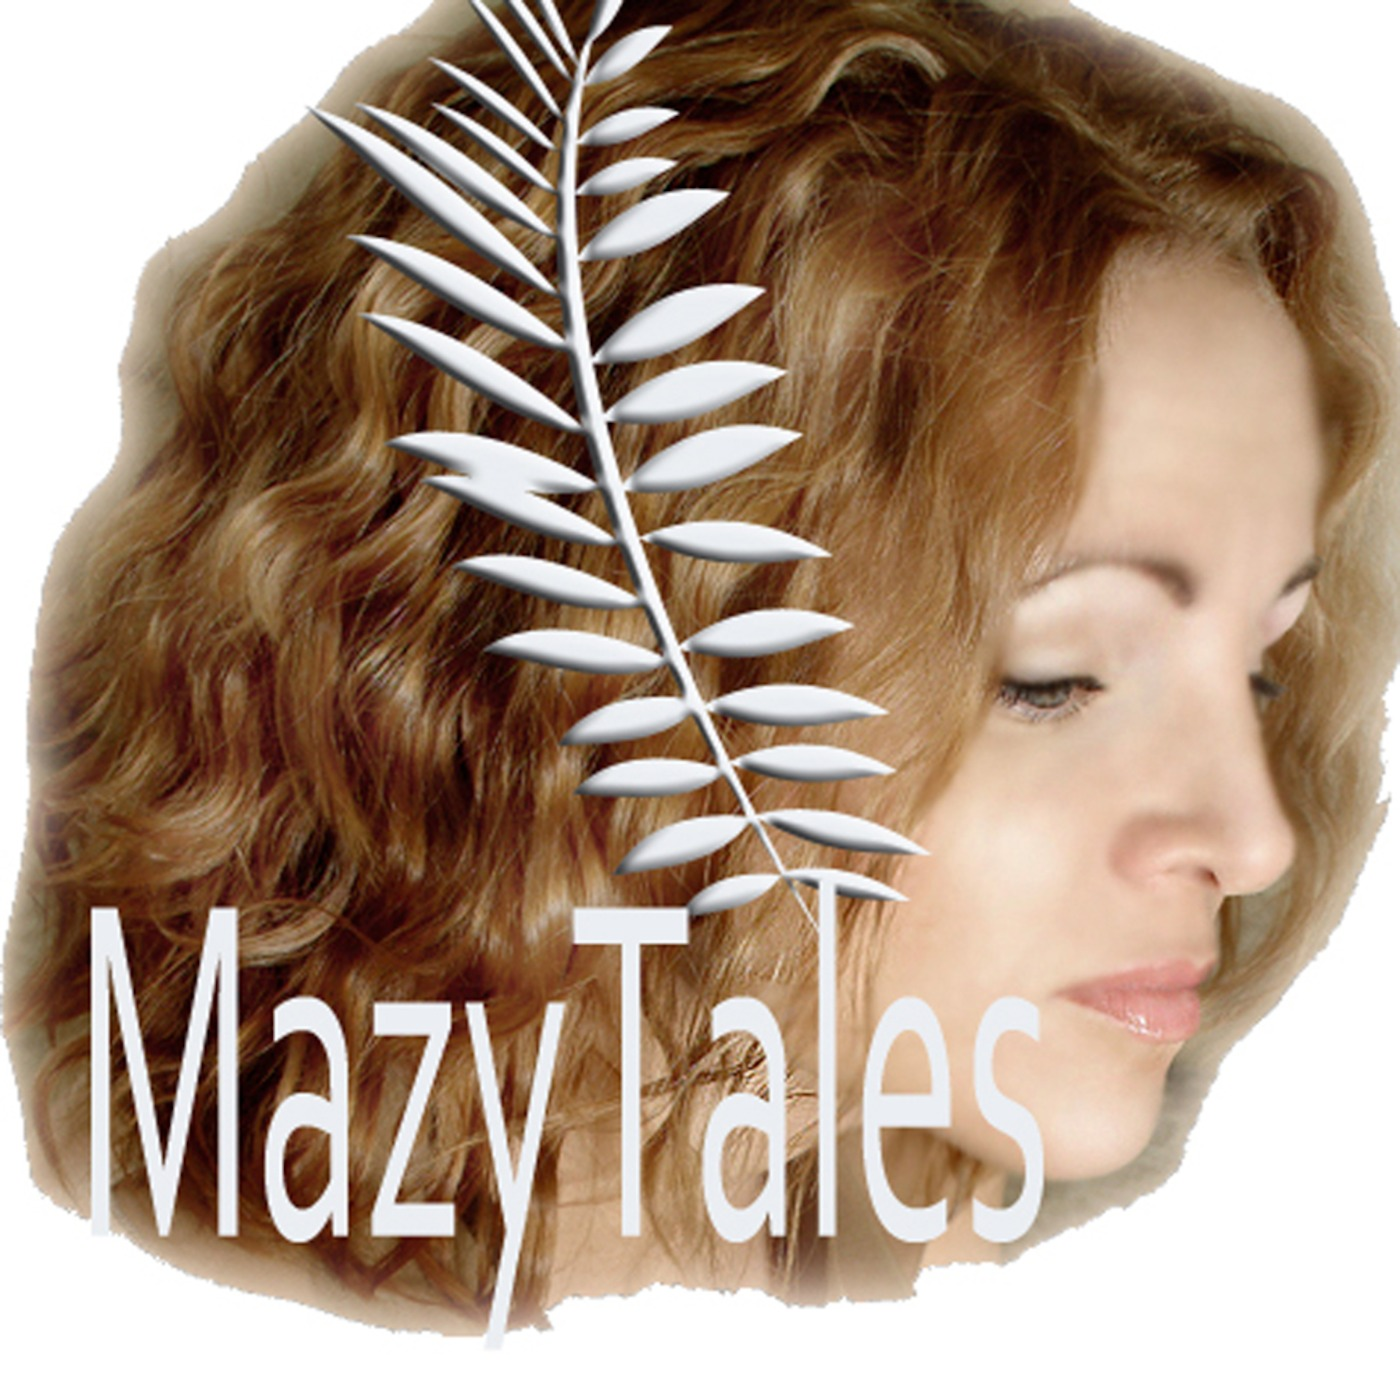 MazyTales Podcast